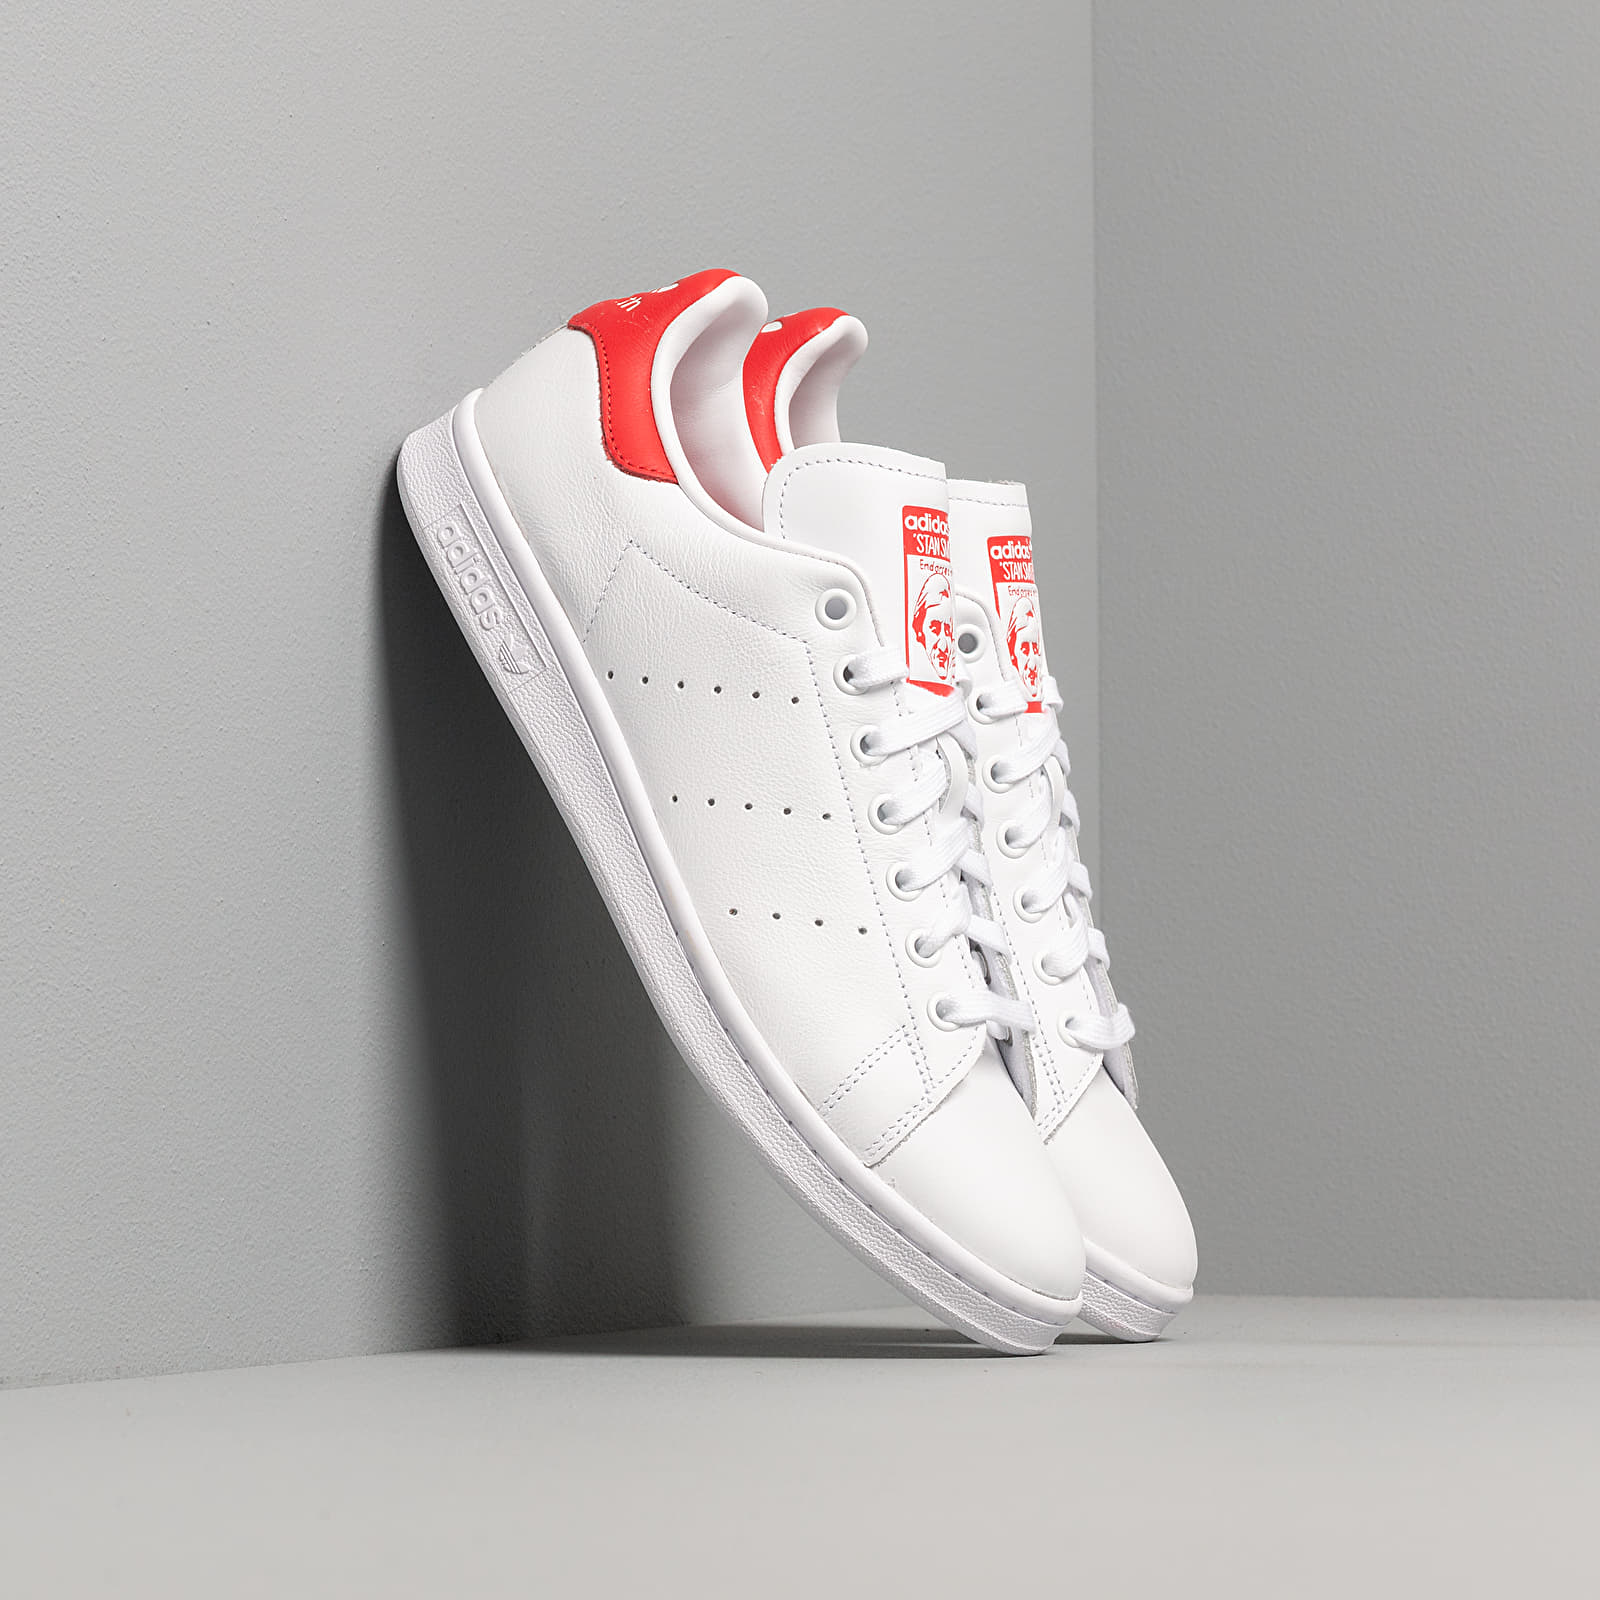 Men's shoes adidas Stan Smith Ftw White/ Ftw White/ Lust Red